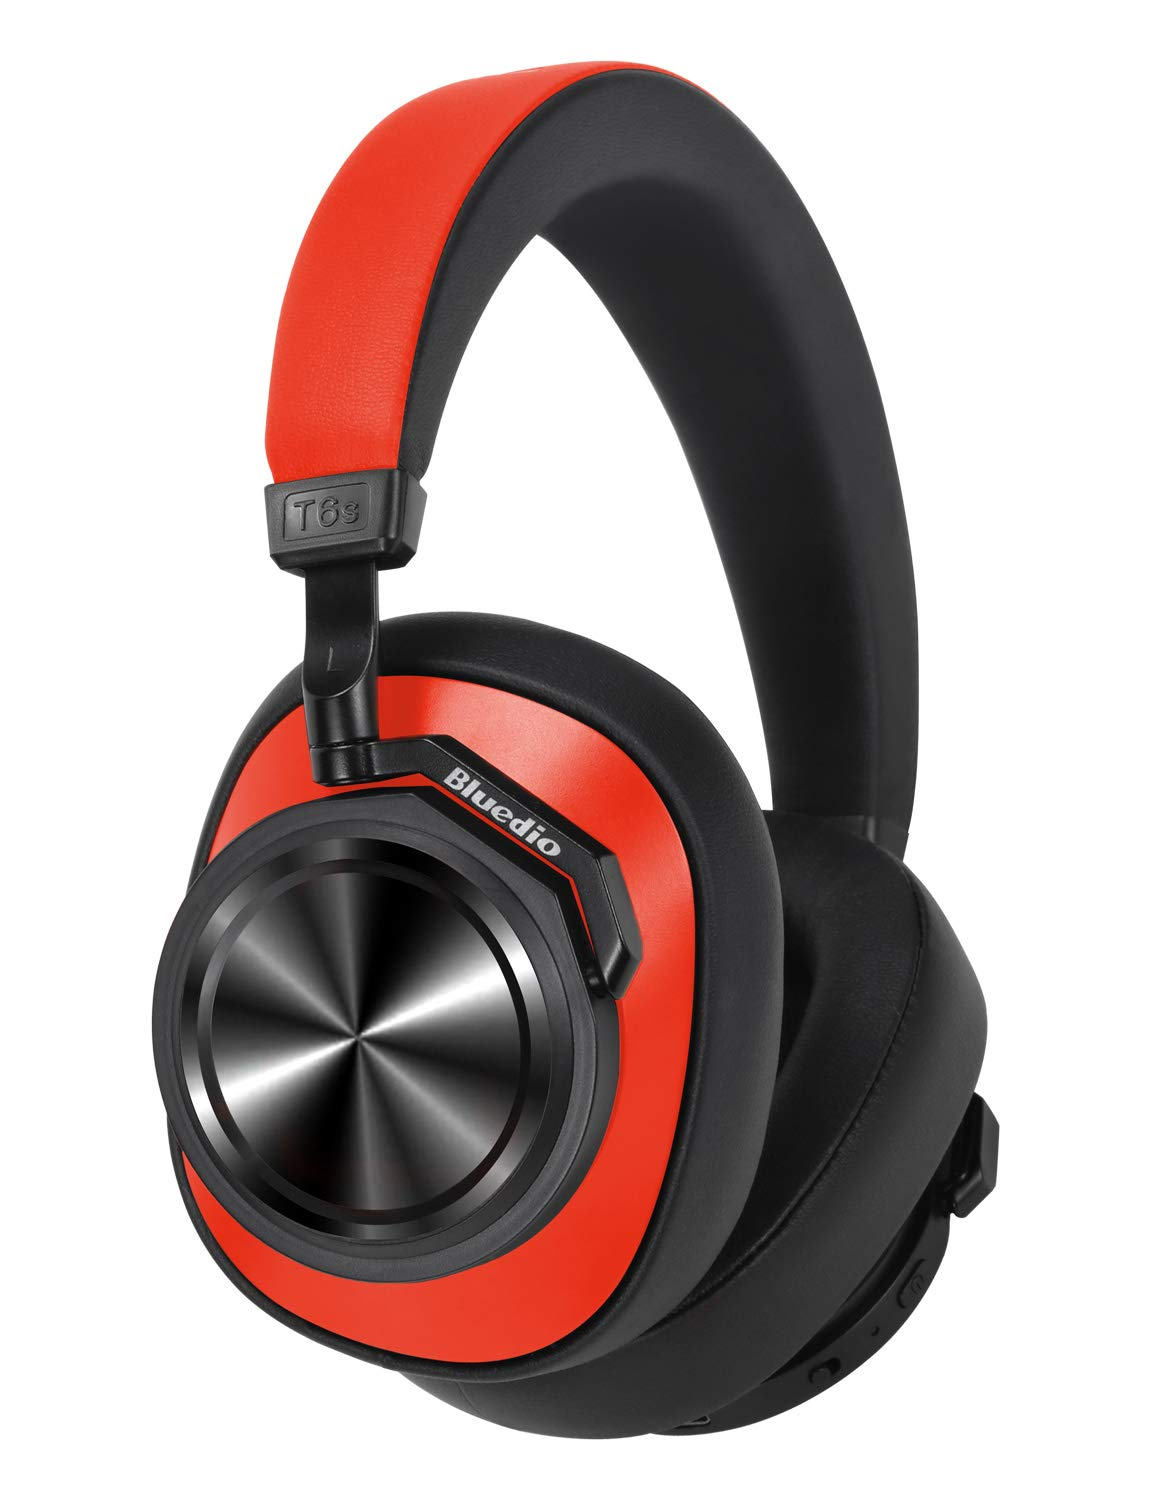 Bluedio T6S Bluetooth Headphones Over Ear with Mic, Active Noise Canceling Headset Voice Control Support Amazon Web Services (AWS), Wireless Headphones for Cell Phone/PC, 32-Hrs Play Time, Red